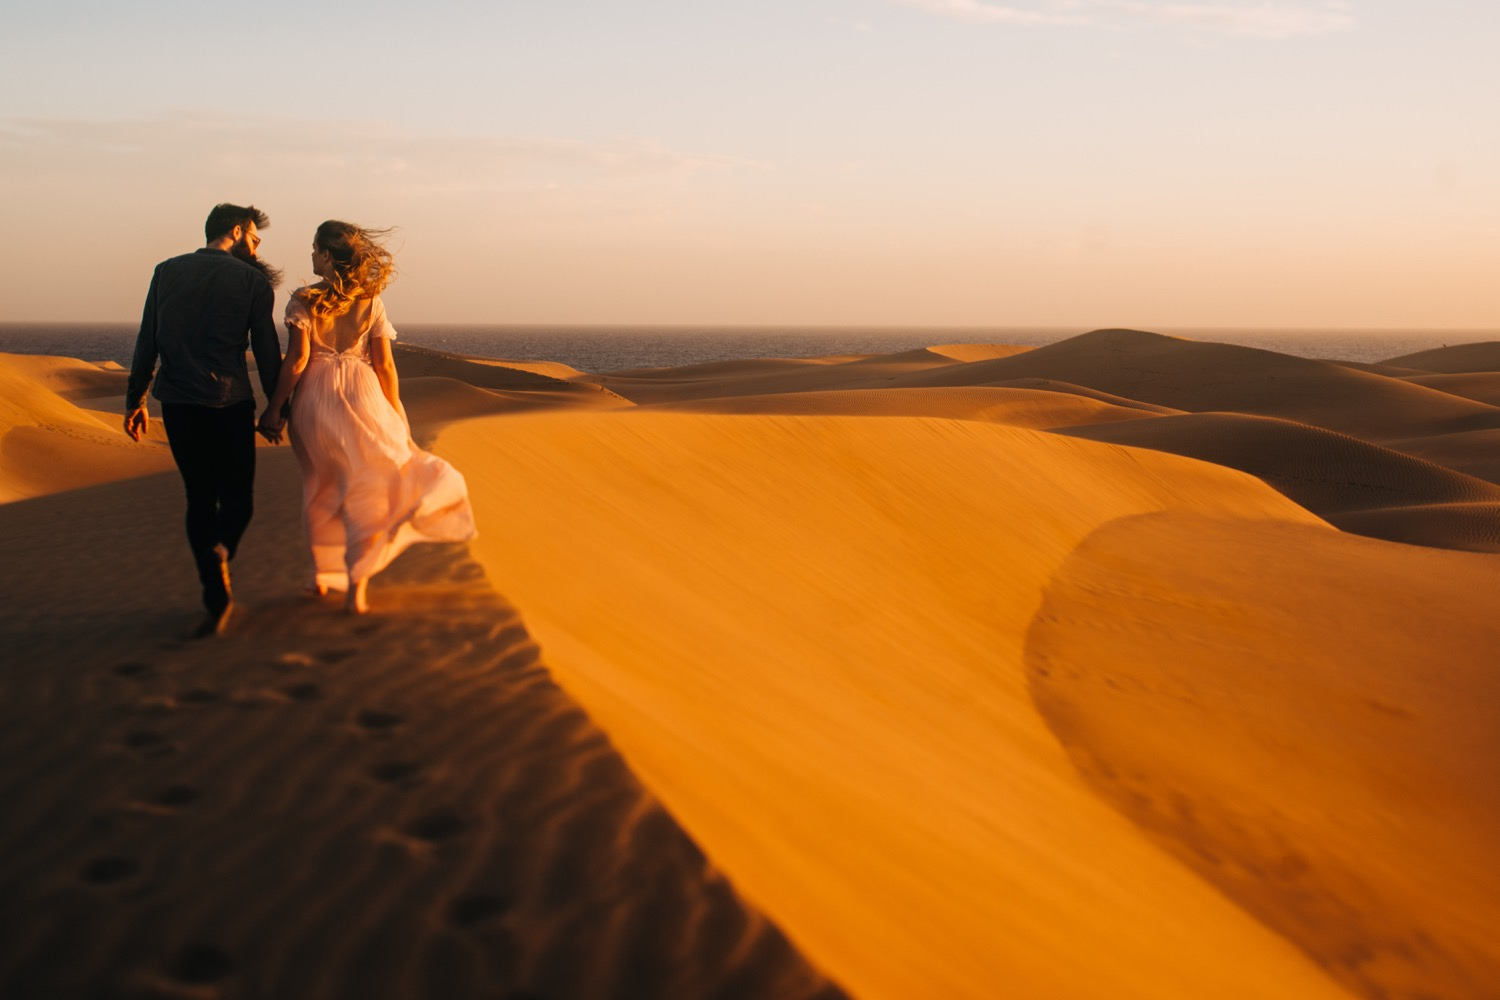 Couple walking on sand dunes in Gran Canaria showing one of the coolest places to elope in Europe.